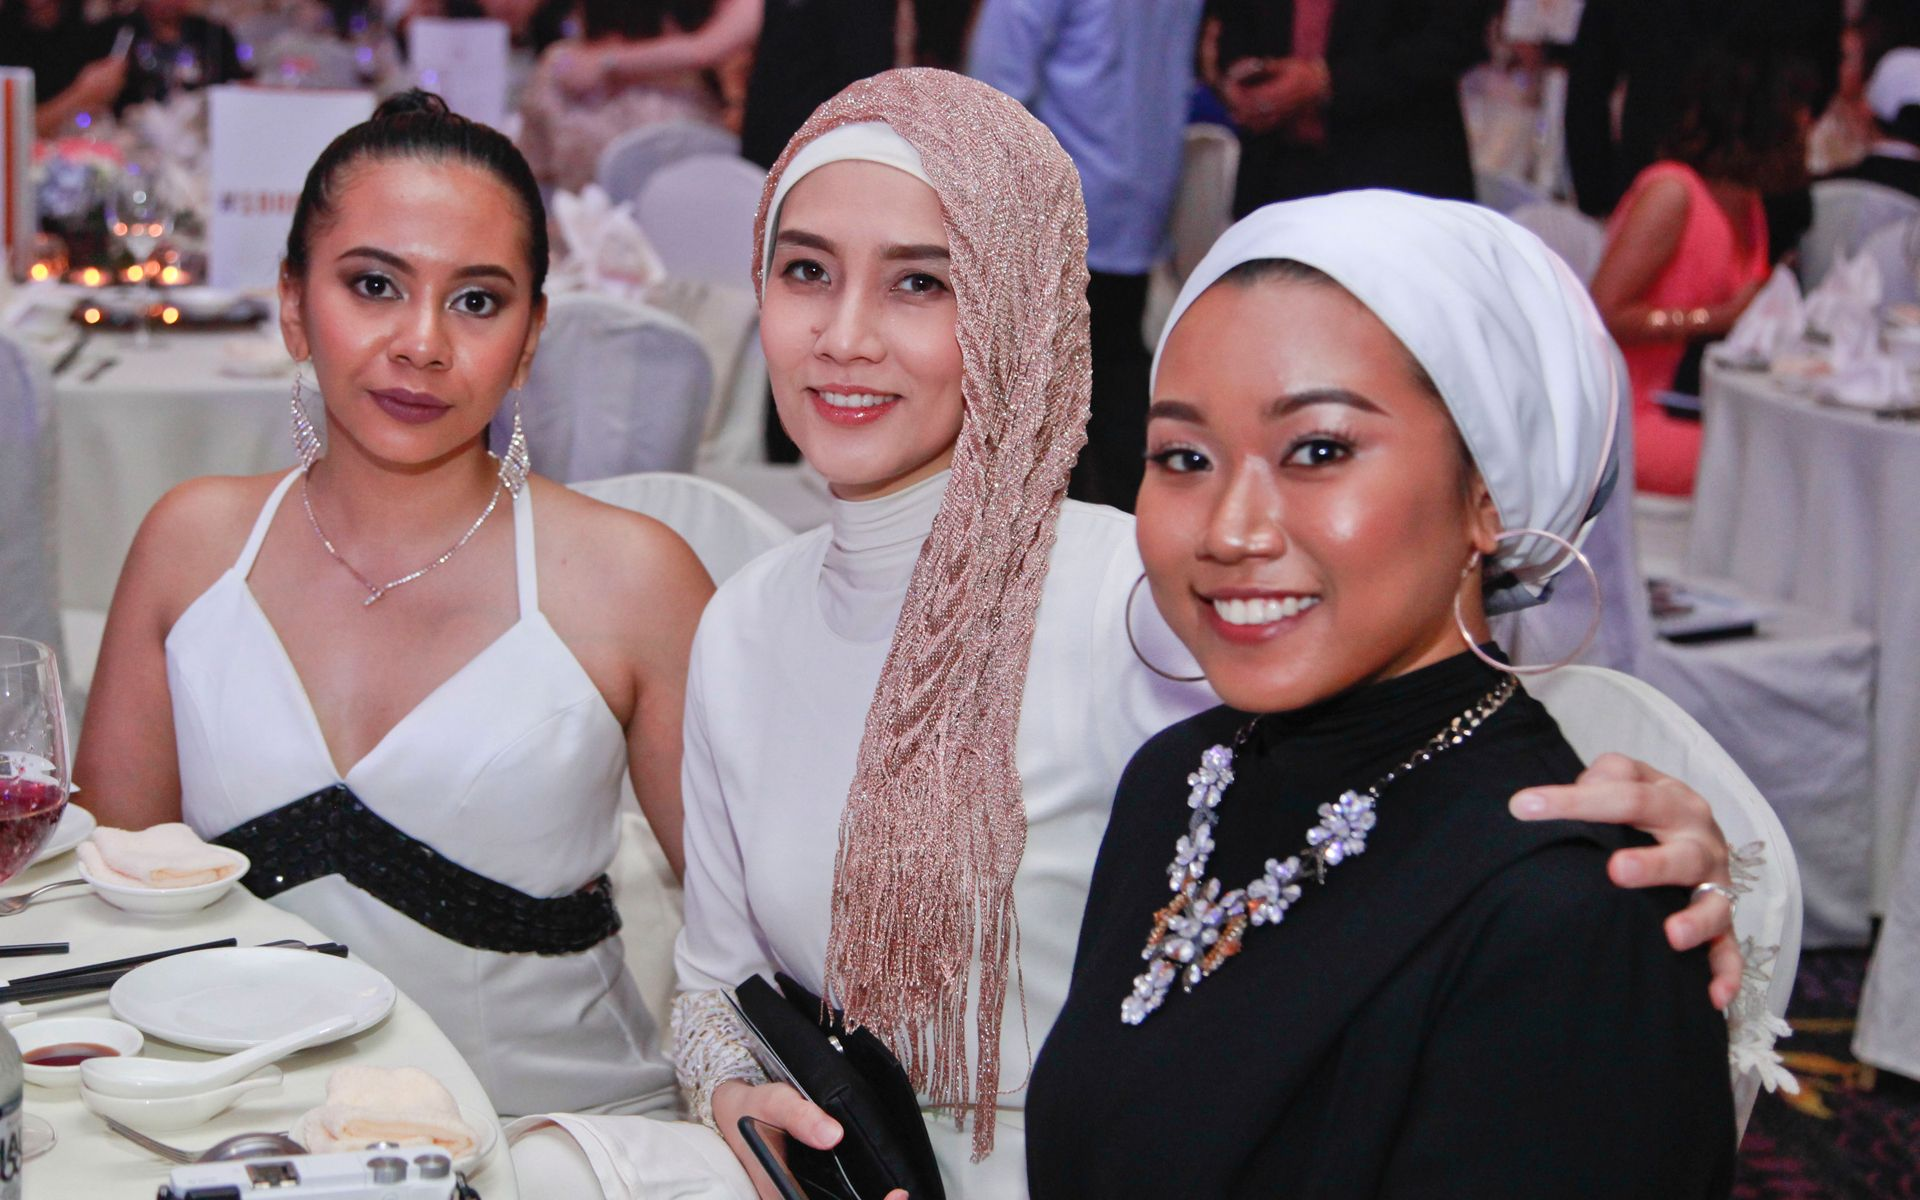 Natasha Qistina, Jehan Hamid and Shafiqah Hazarin